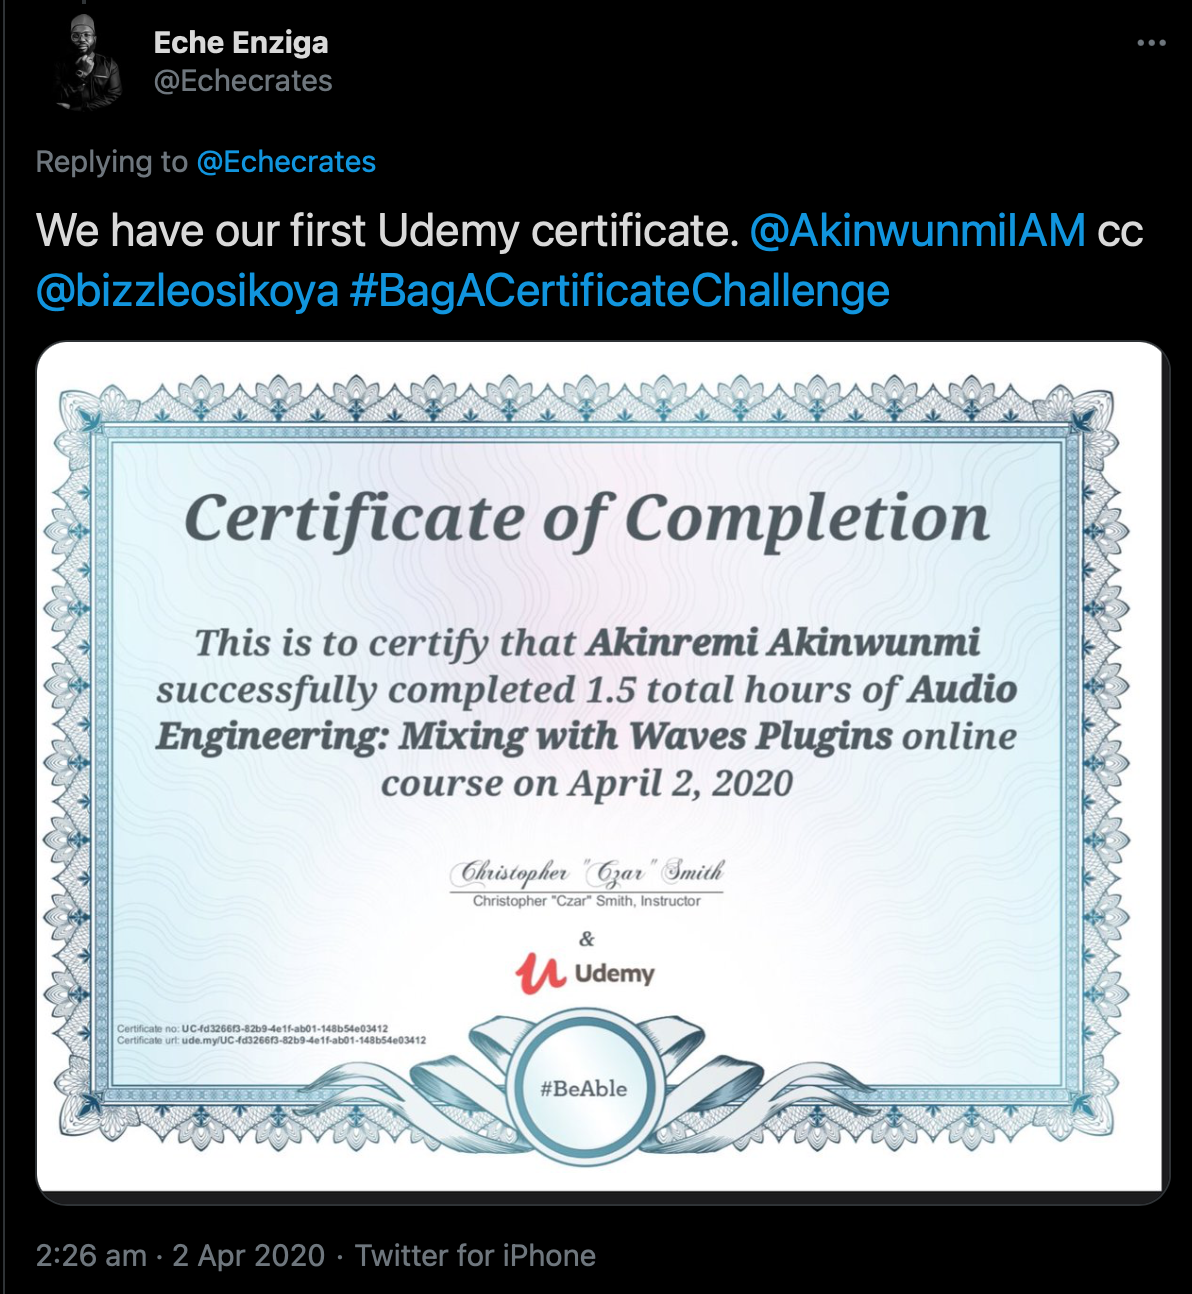 Certified issued by Udemy